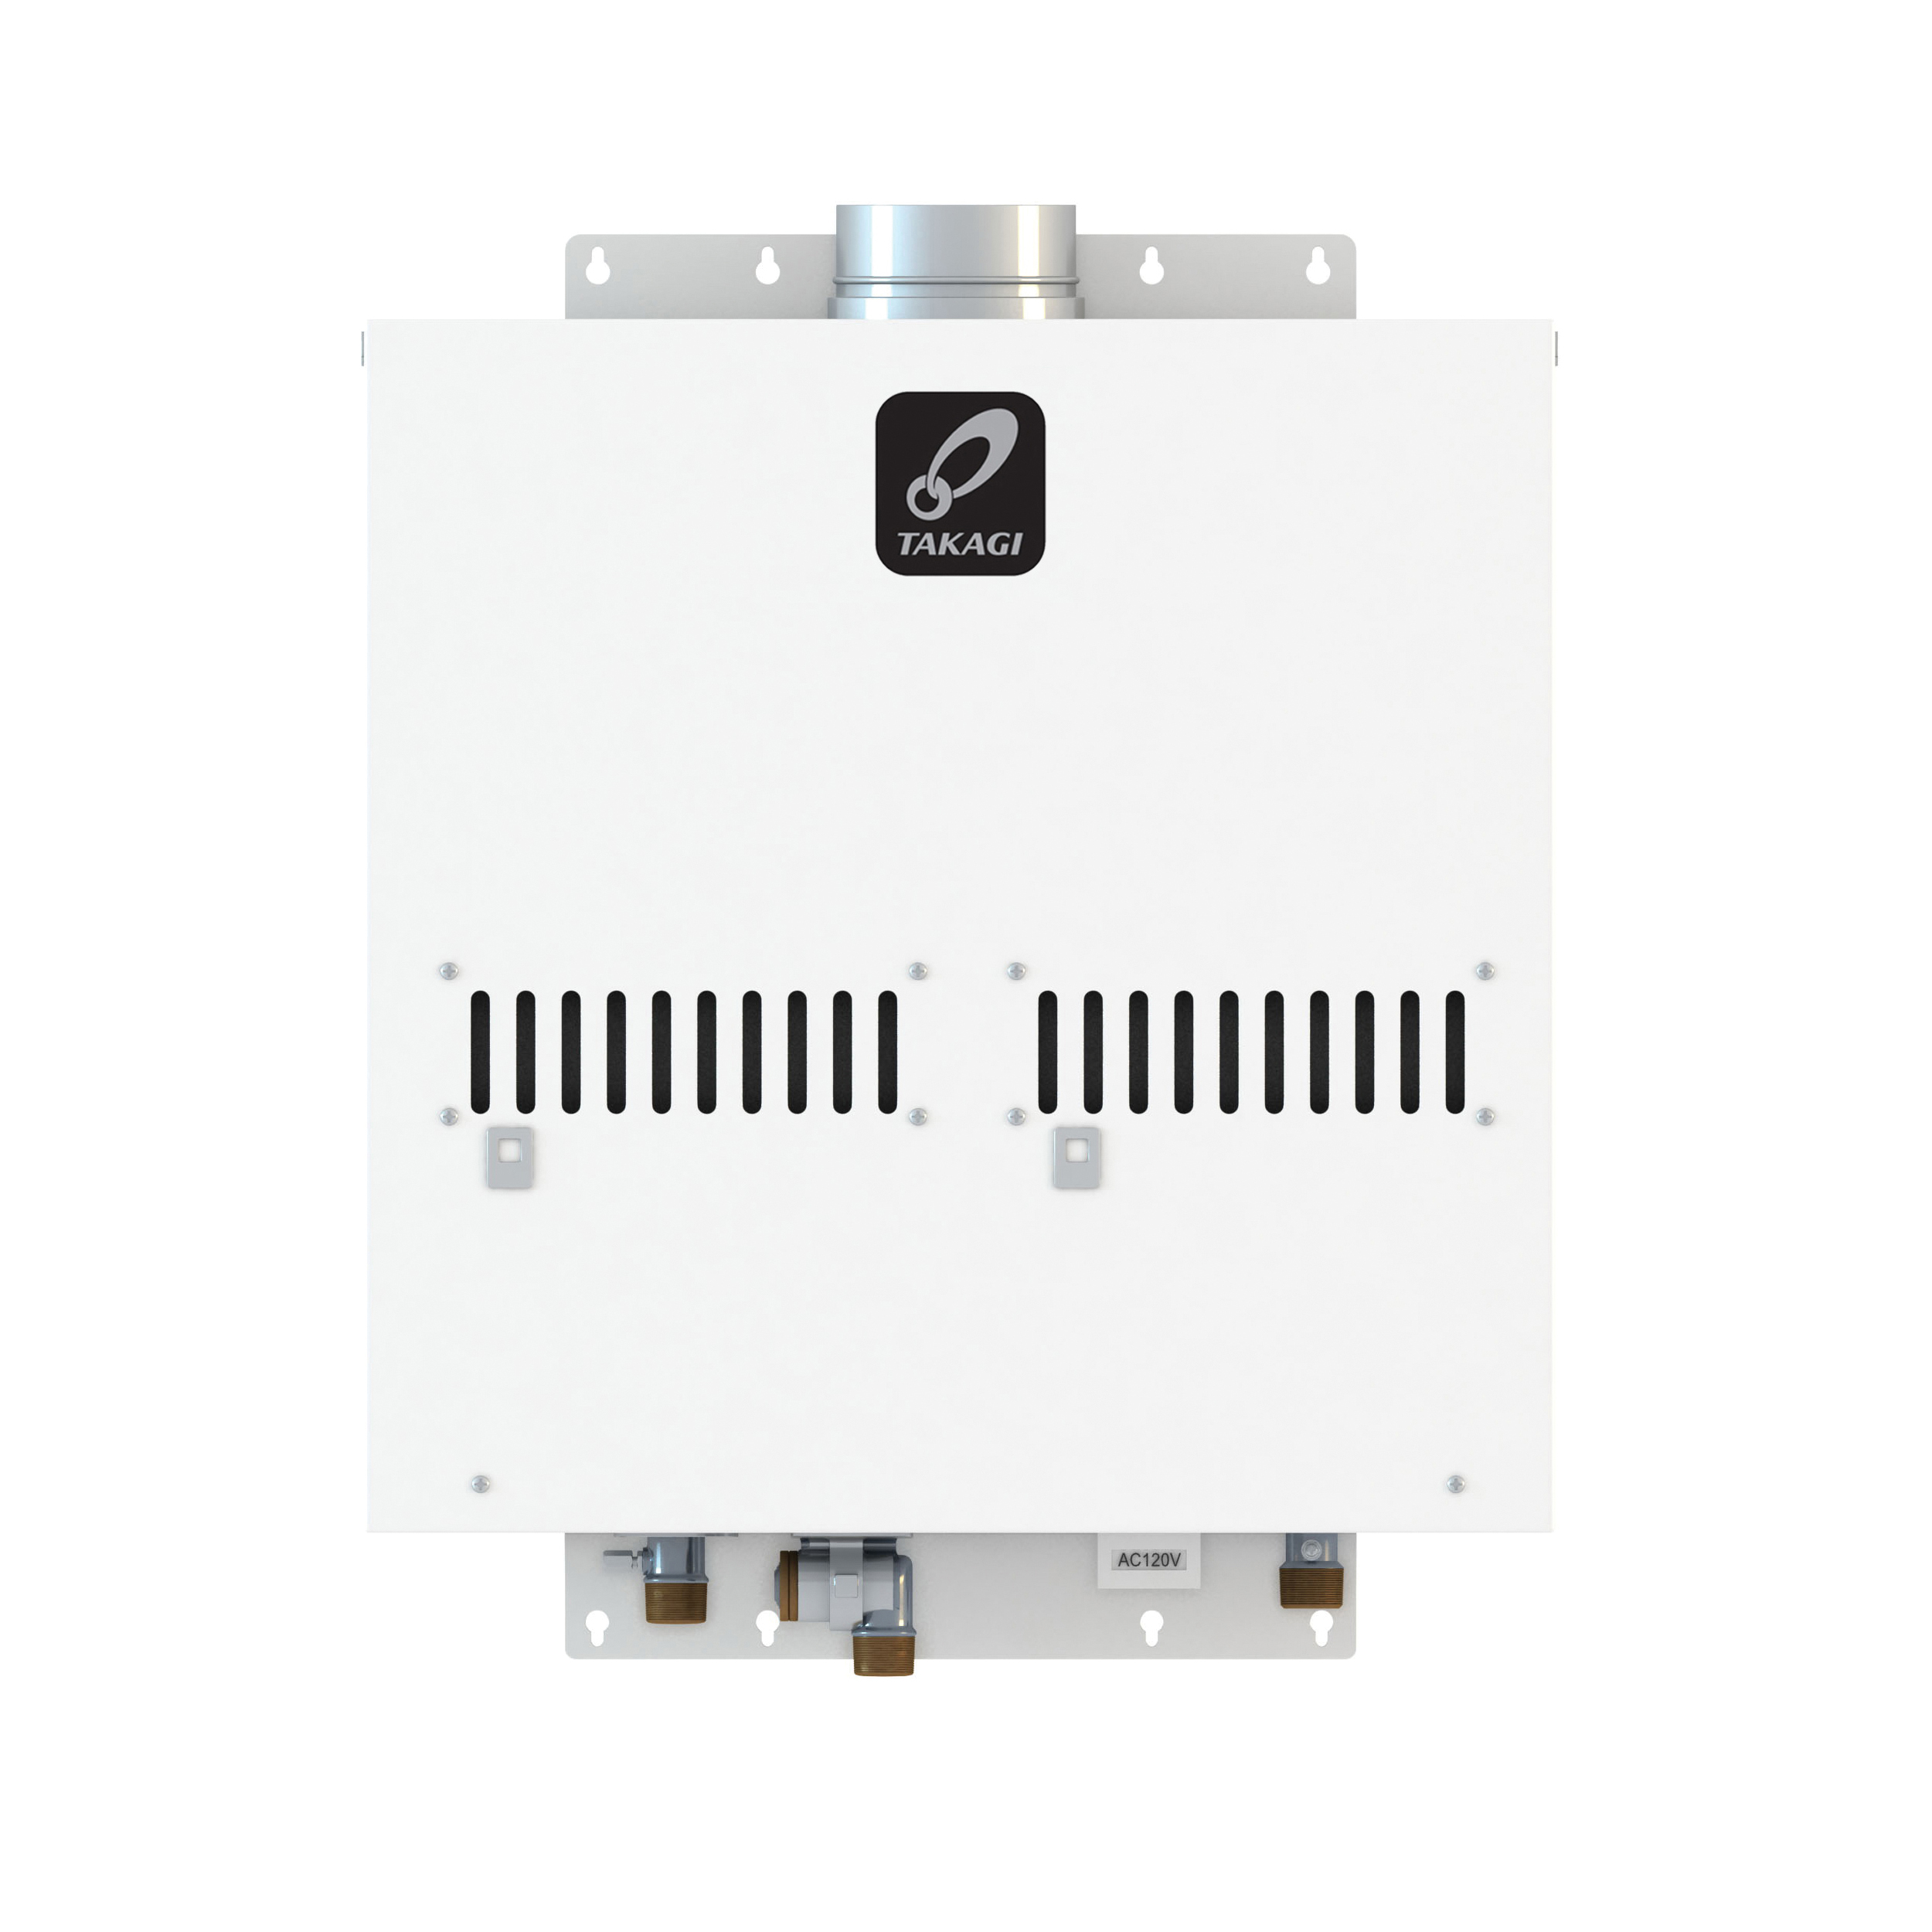 Takagi TM50ASMELP M50 Tankless Water Heater, Liquid Propane Fuel, 380000 Btu/hr Heating, Indoor/Outdoor: Indoor/Outdoor, Condensing/Non Condensing: Non Condensing, 14.5 gpm, 5 in, 0.82, Commercial/Residential/Dual: Commercial, Ultra Low NOx: No